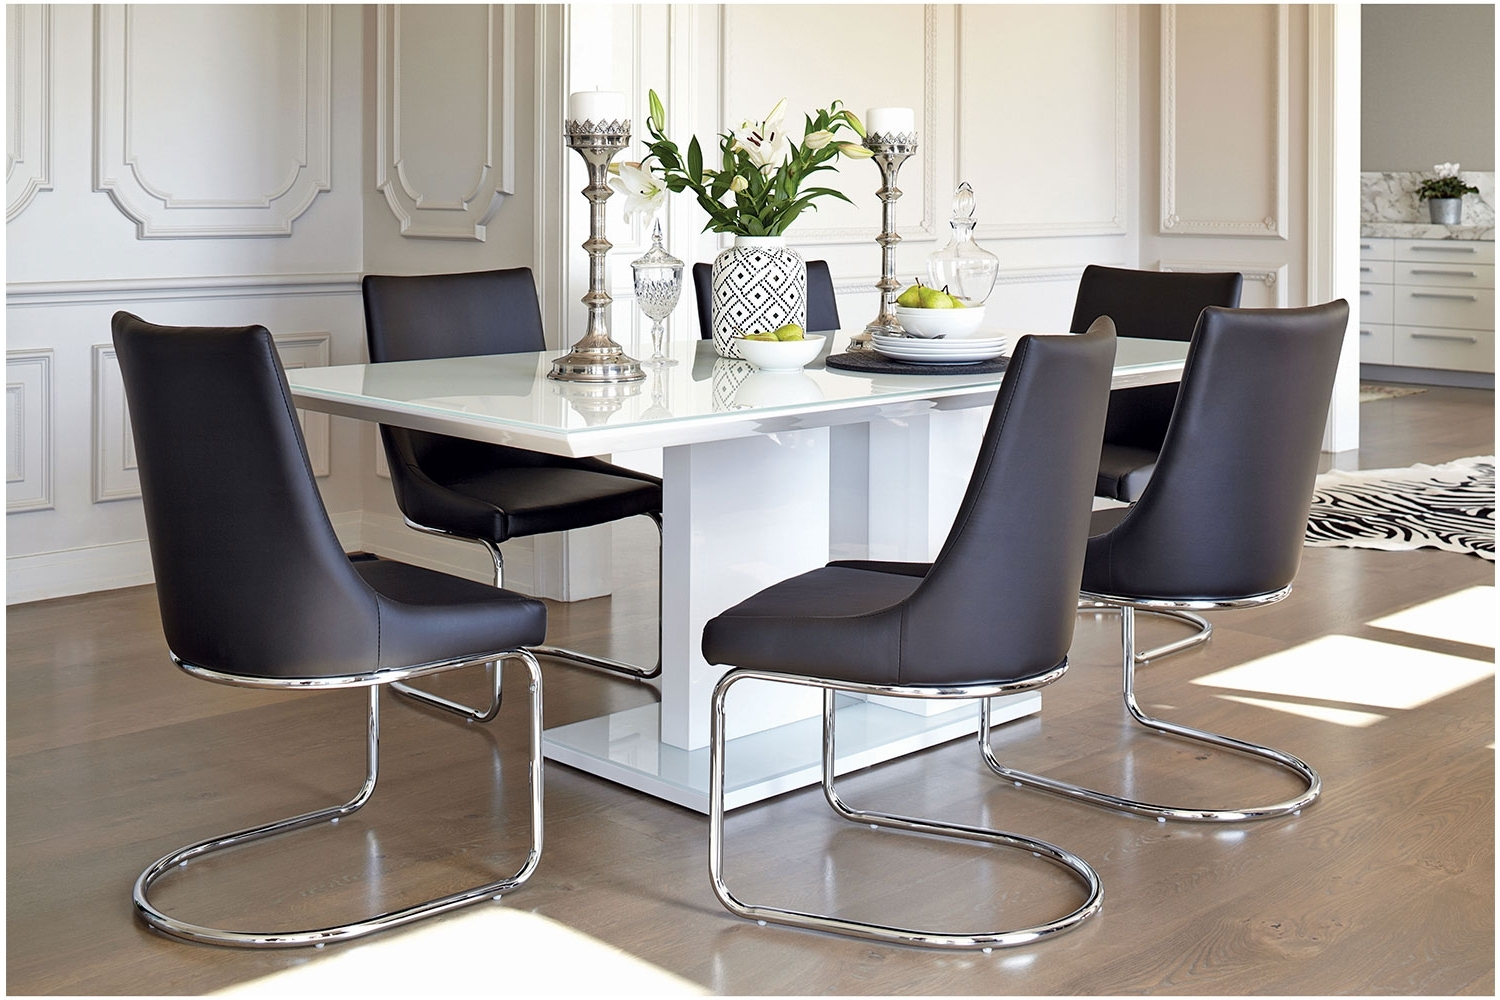 Harvey Norman Executive Office Chairs Inside Recent Dining Office Chairs Nz – Home Design – Game Hay (View 8 of 20)